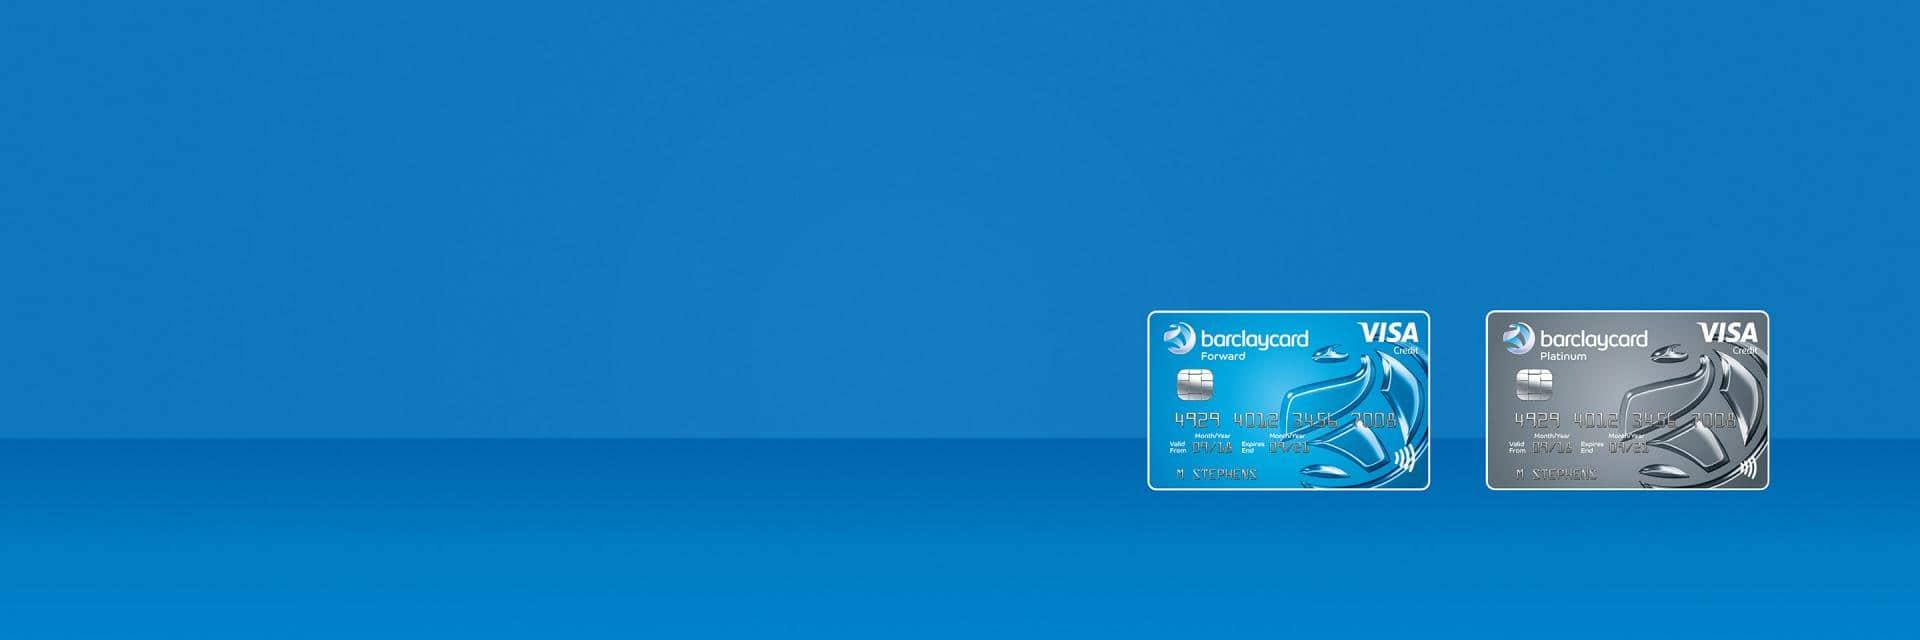 ee1a445fa6f5ae Personal Banking. Barclaycard credit cards